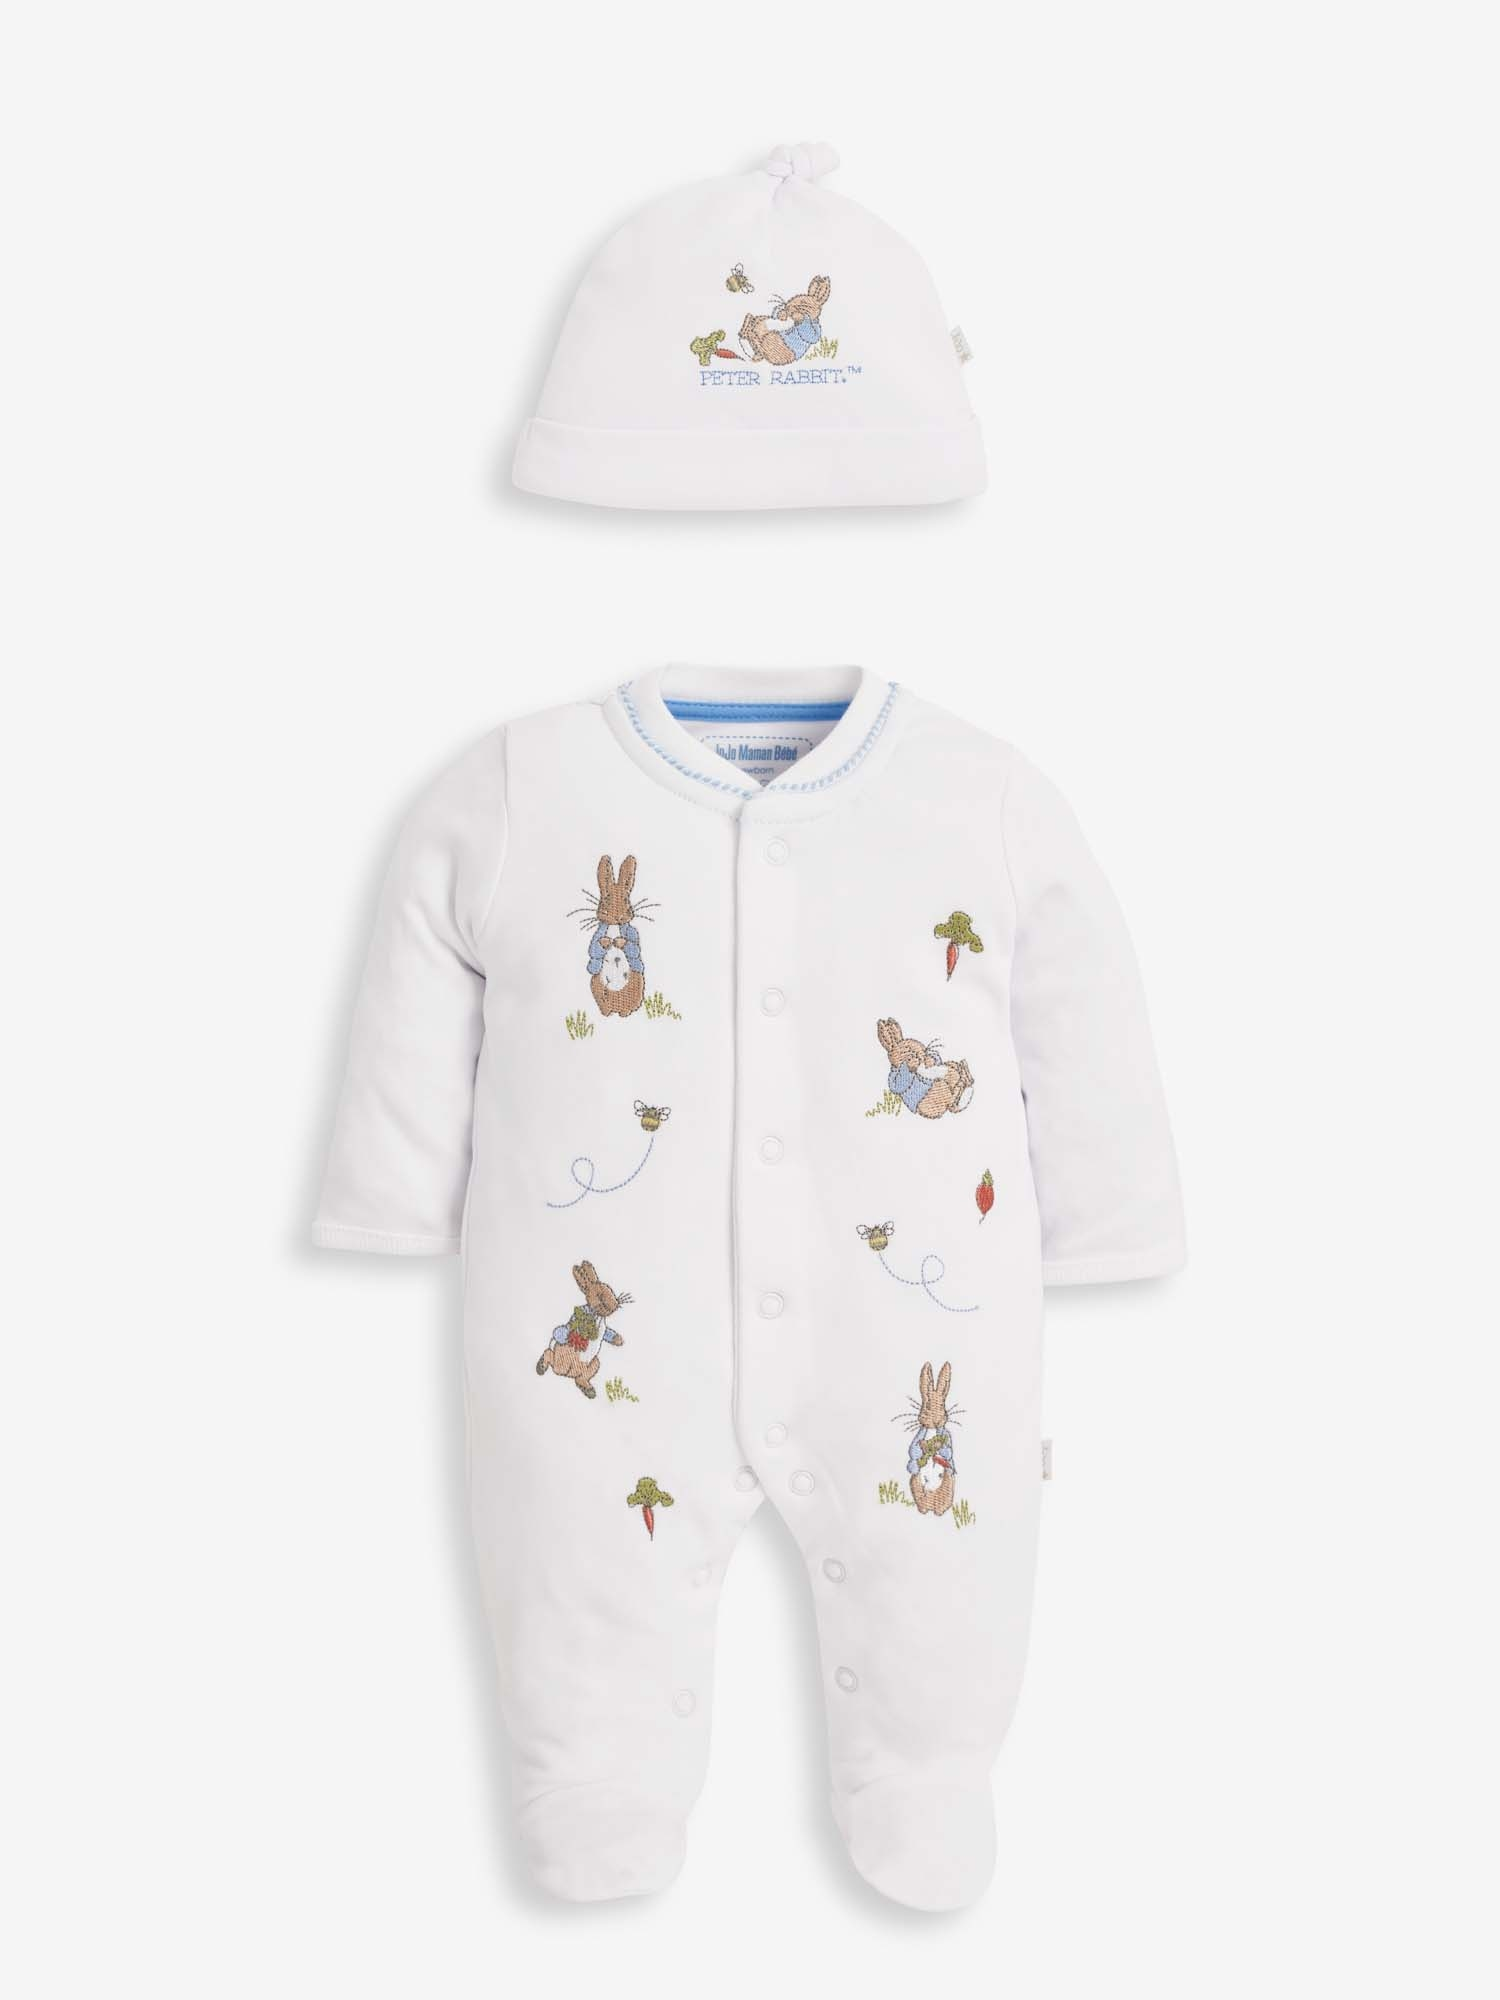 2-Piece Peter Rabbit Veg Patch Embroidered Baby Sleepsuit & Hat Set